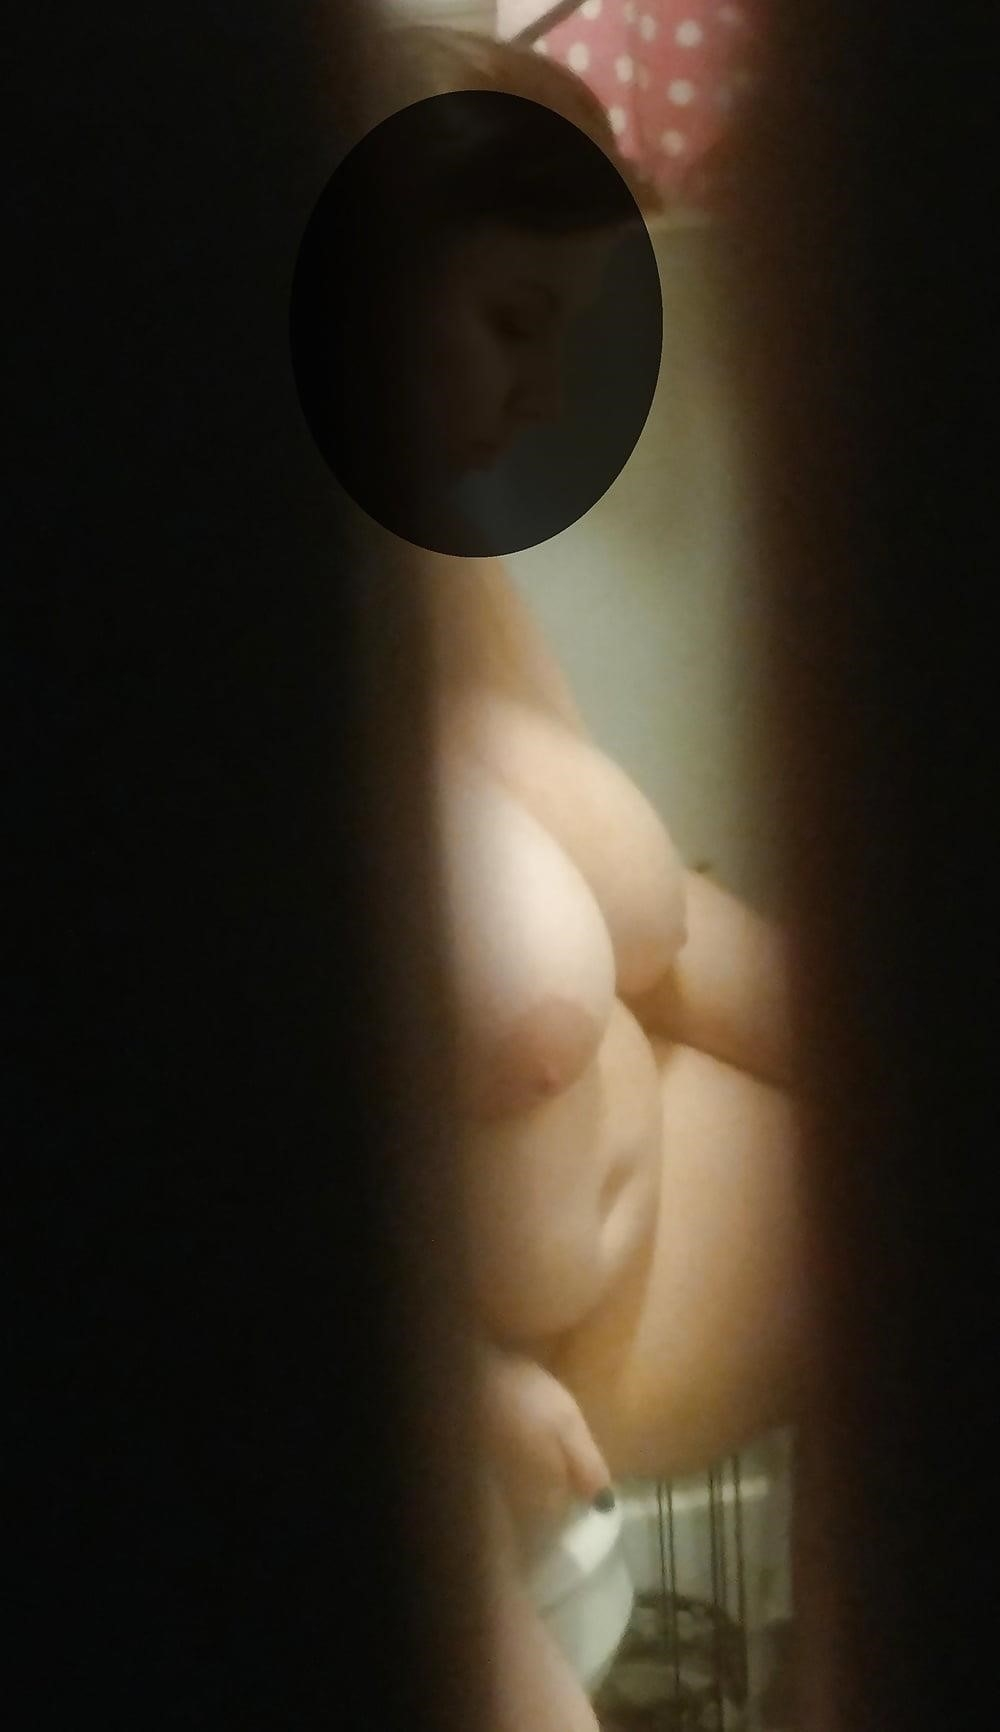 Naked wife in bathroom-1881